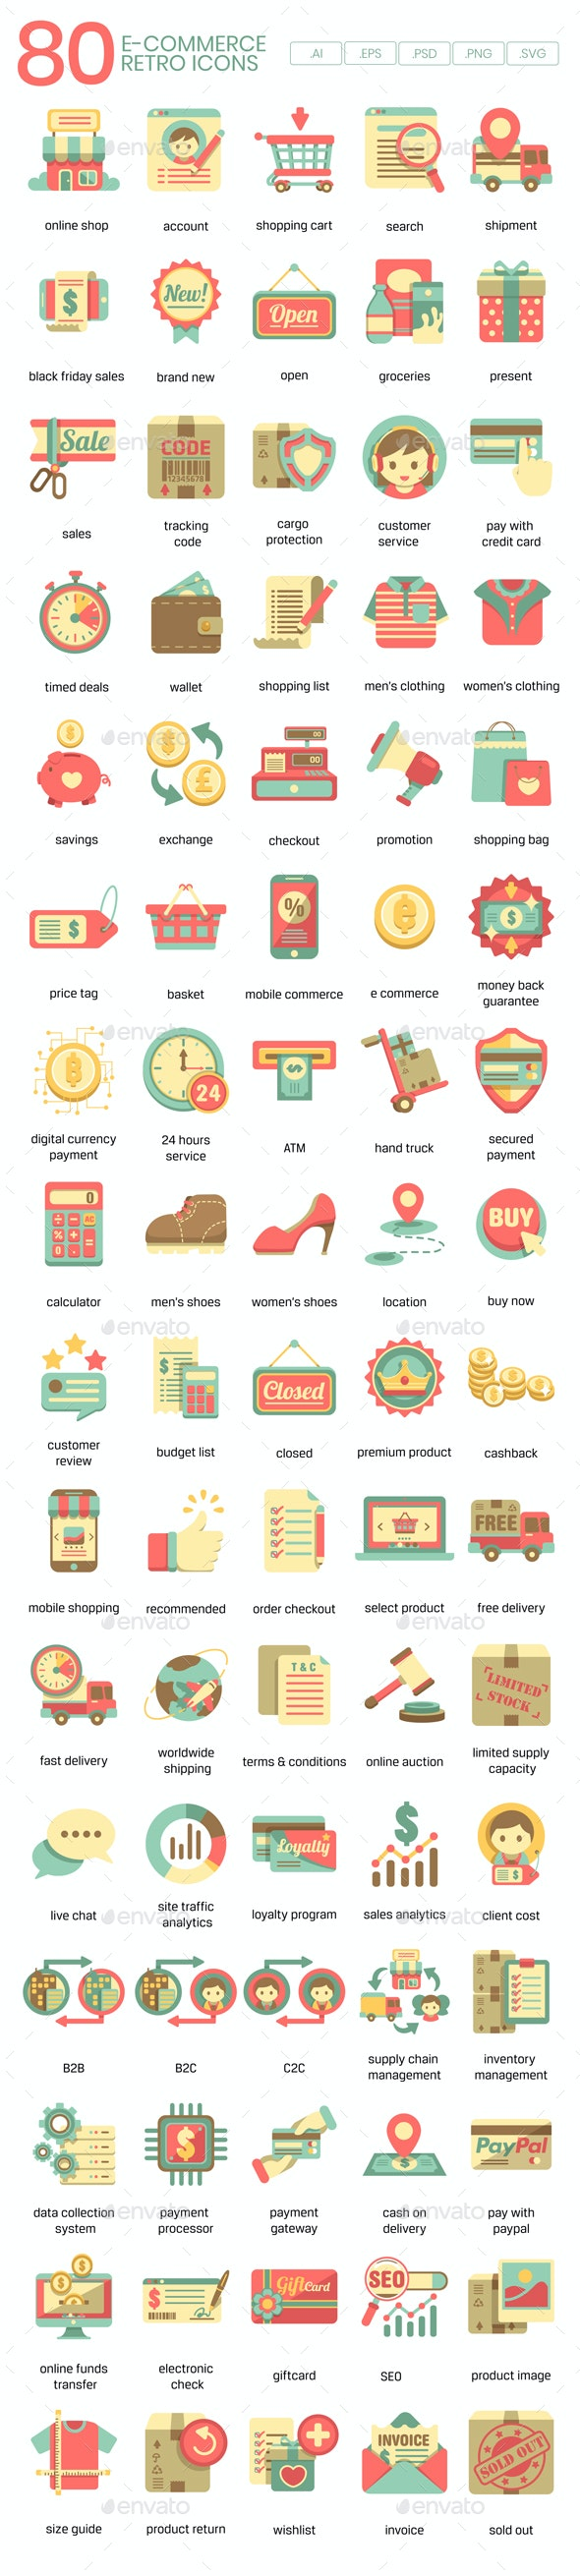 Ecommerce Icons - Retro - Business Icons